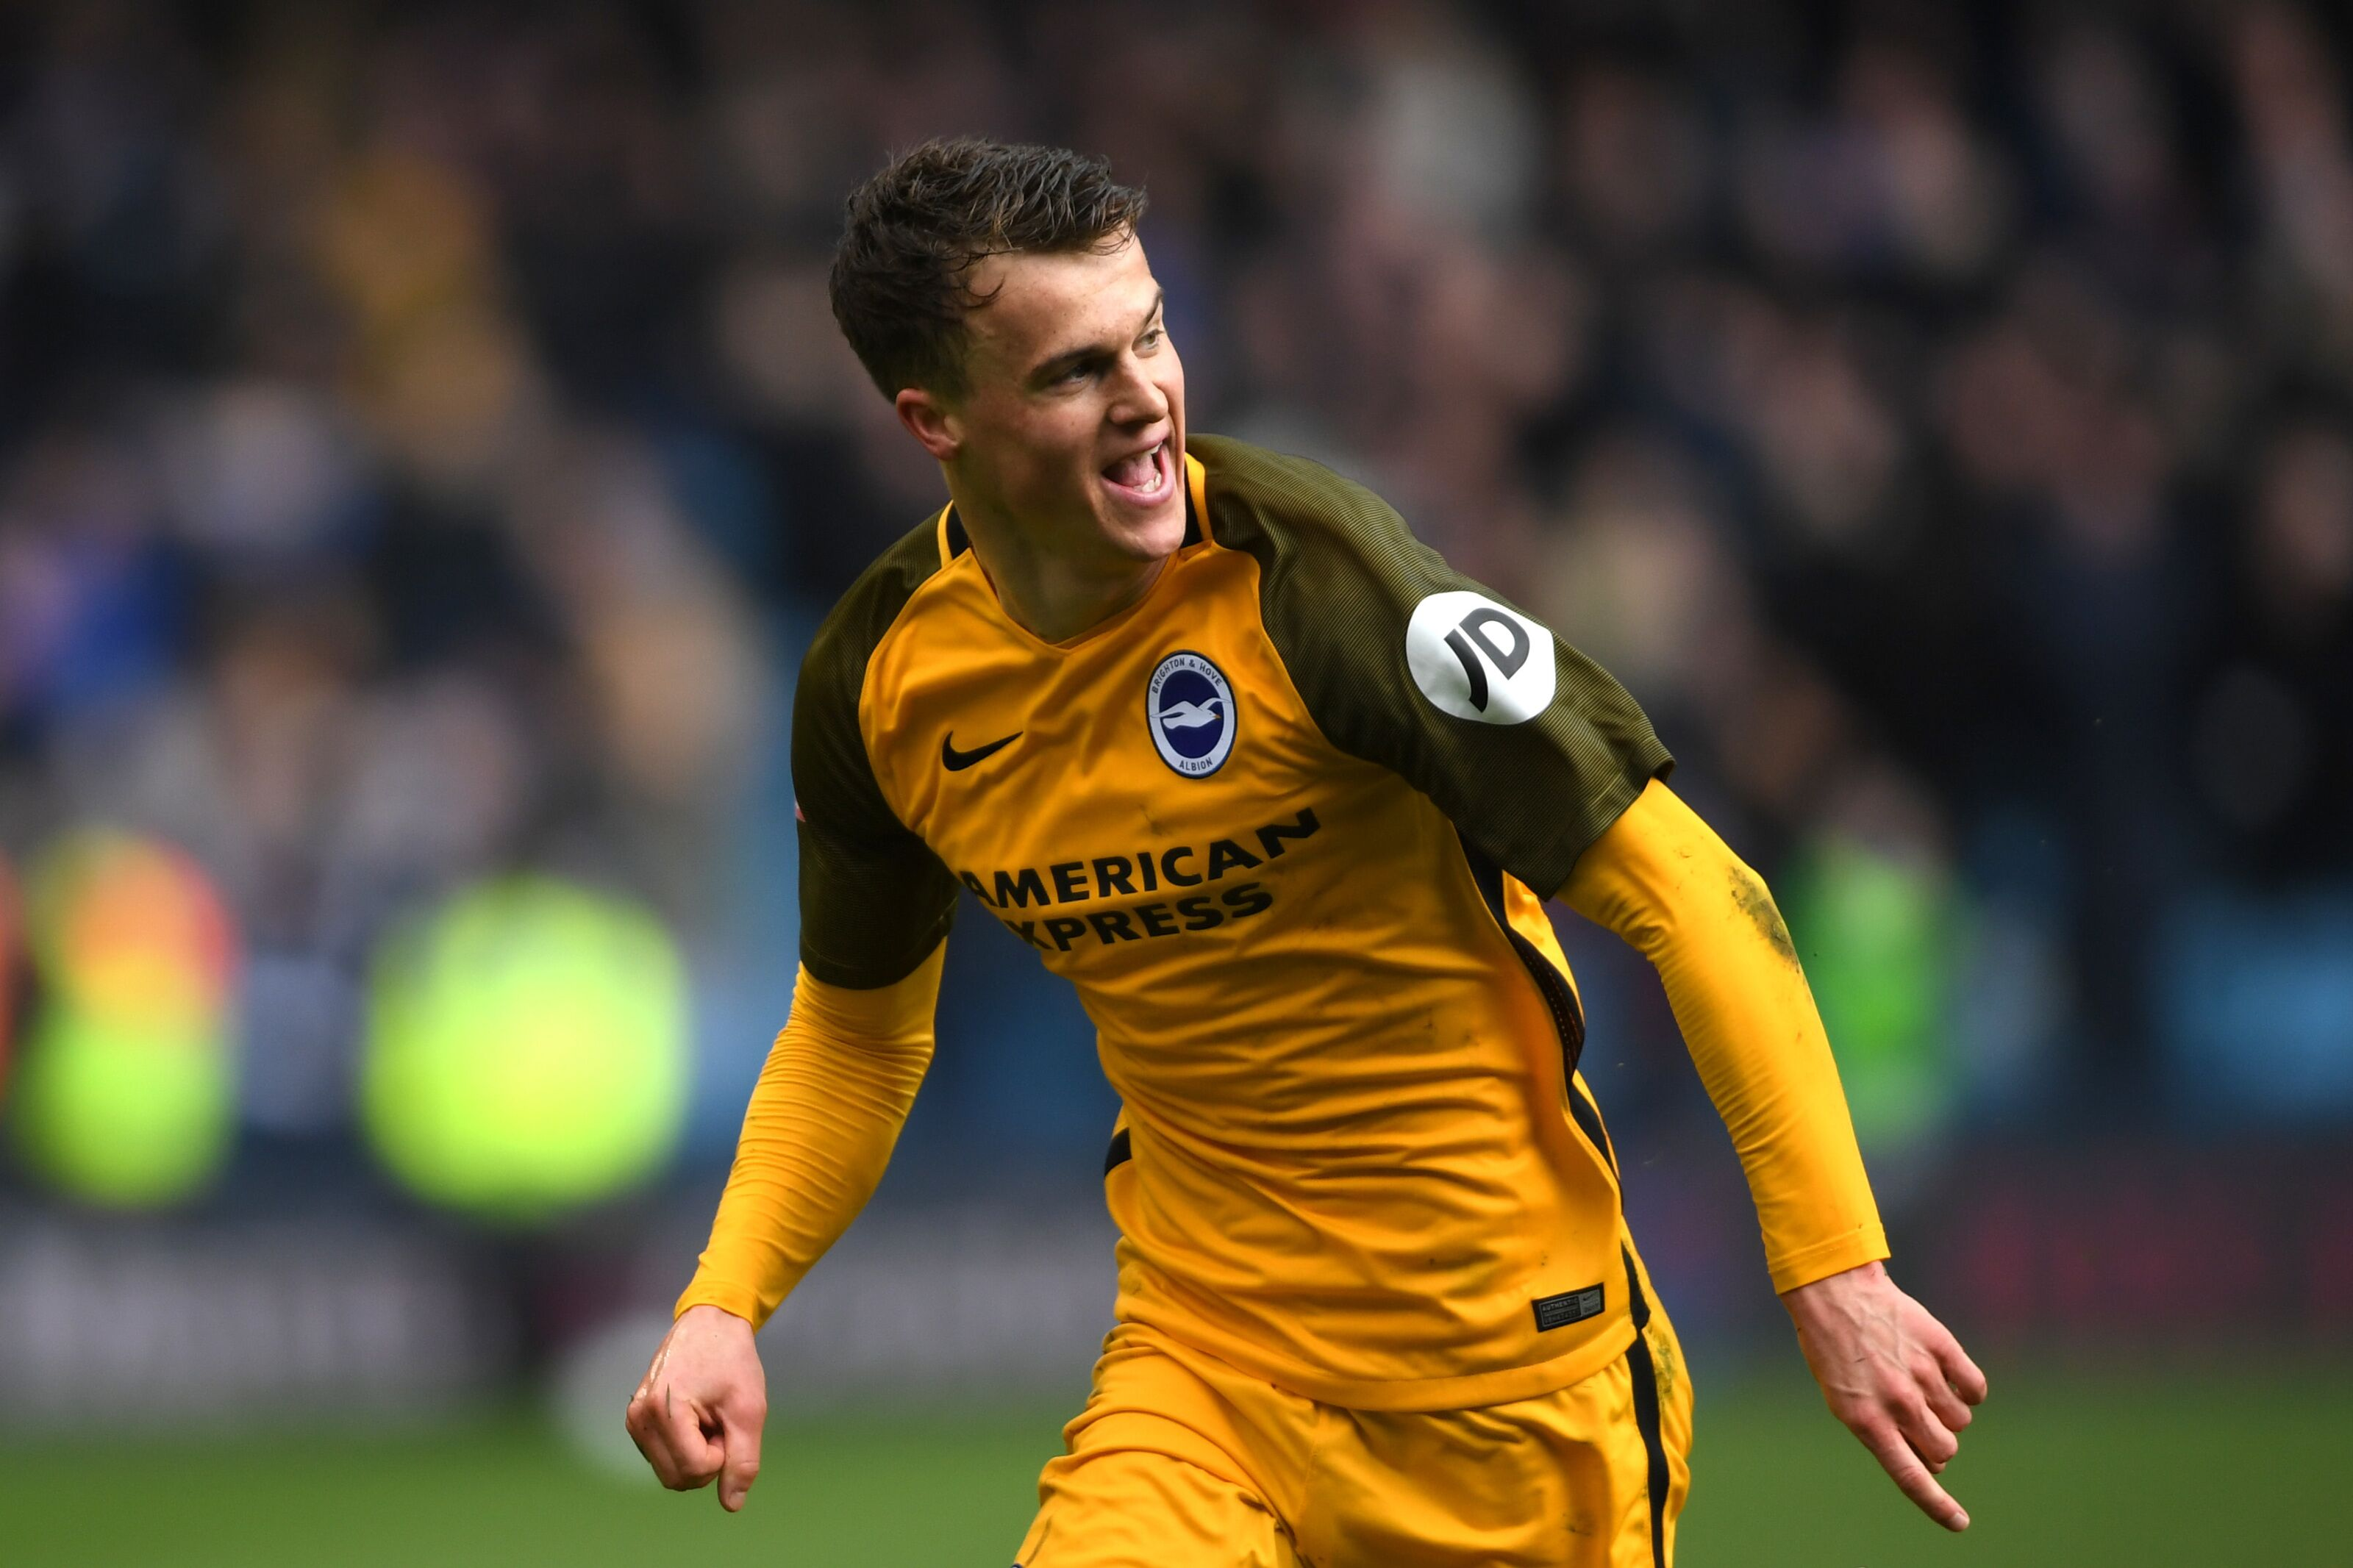 Arsenal: Solly March a sneaky play at needed depth